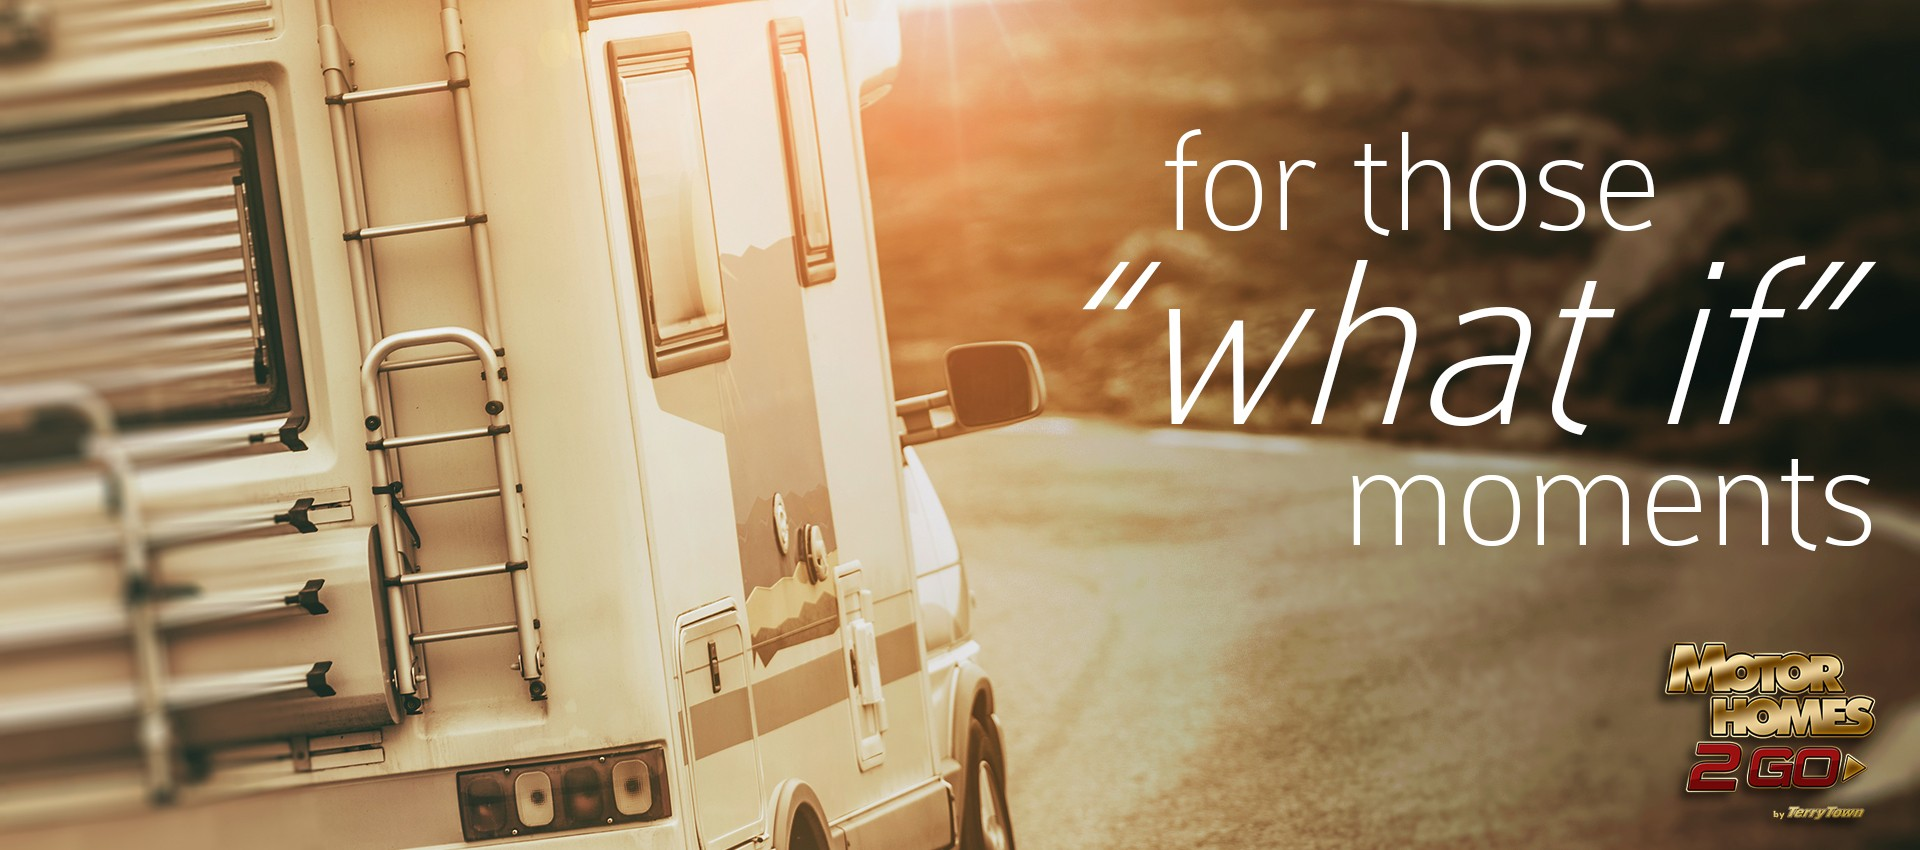 RV Warranties for those